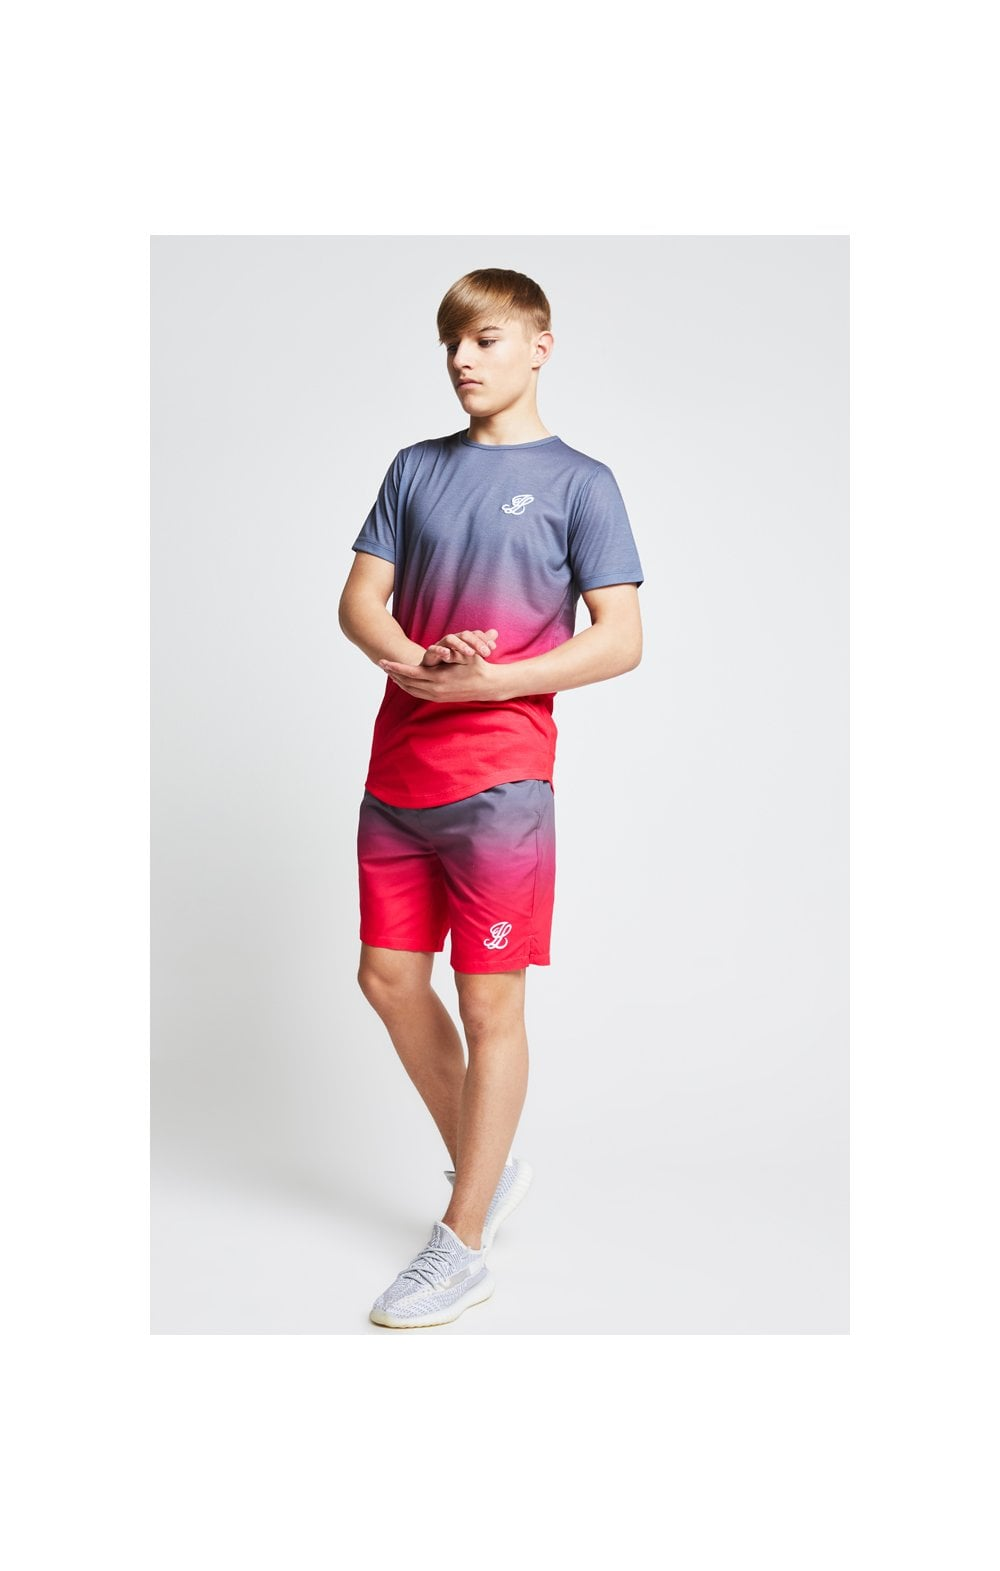 Load image into Gallery viewer, Illusive London Fade Tee - Grey & Pink (2)